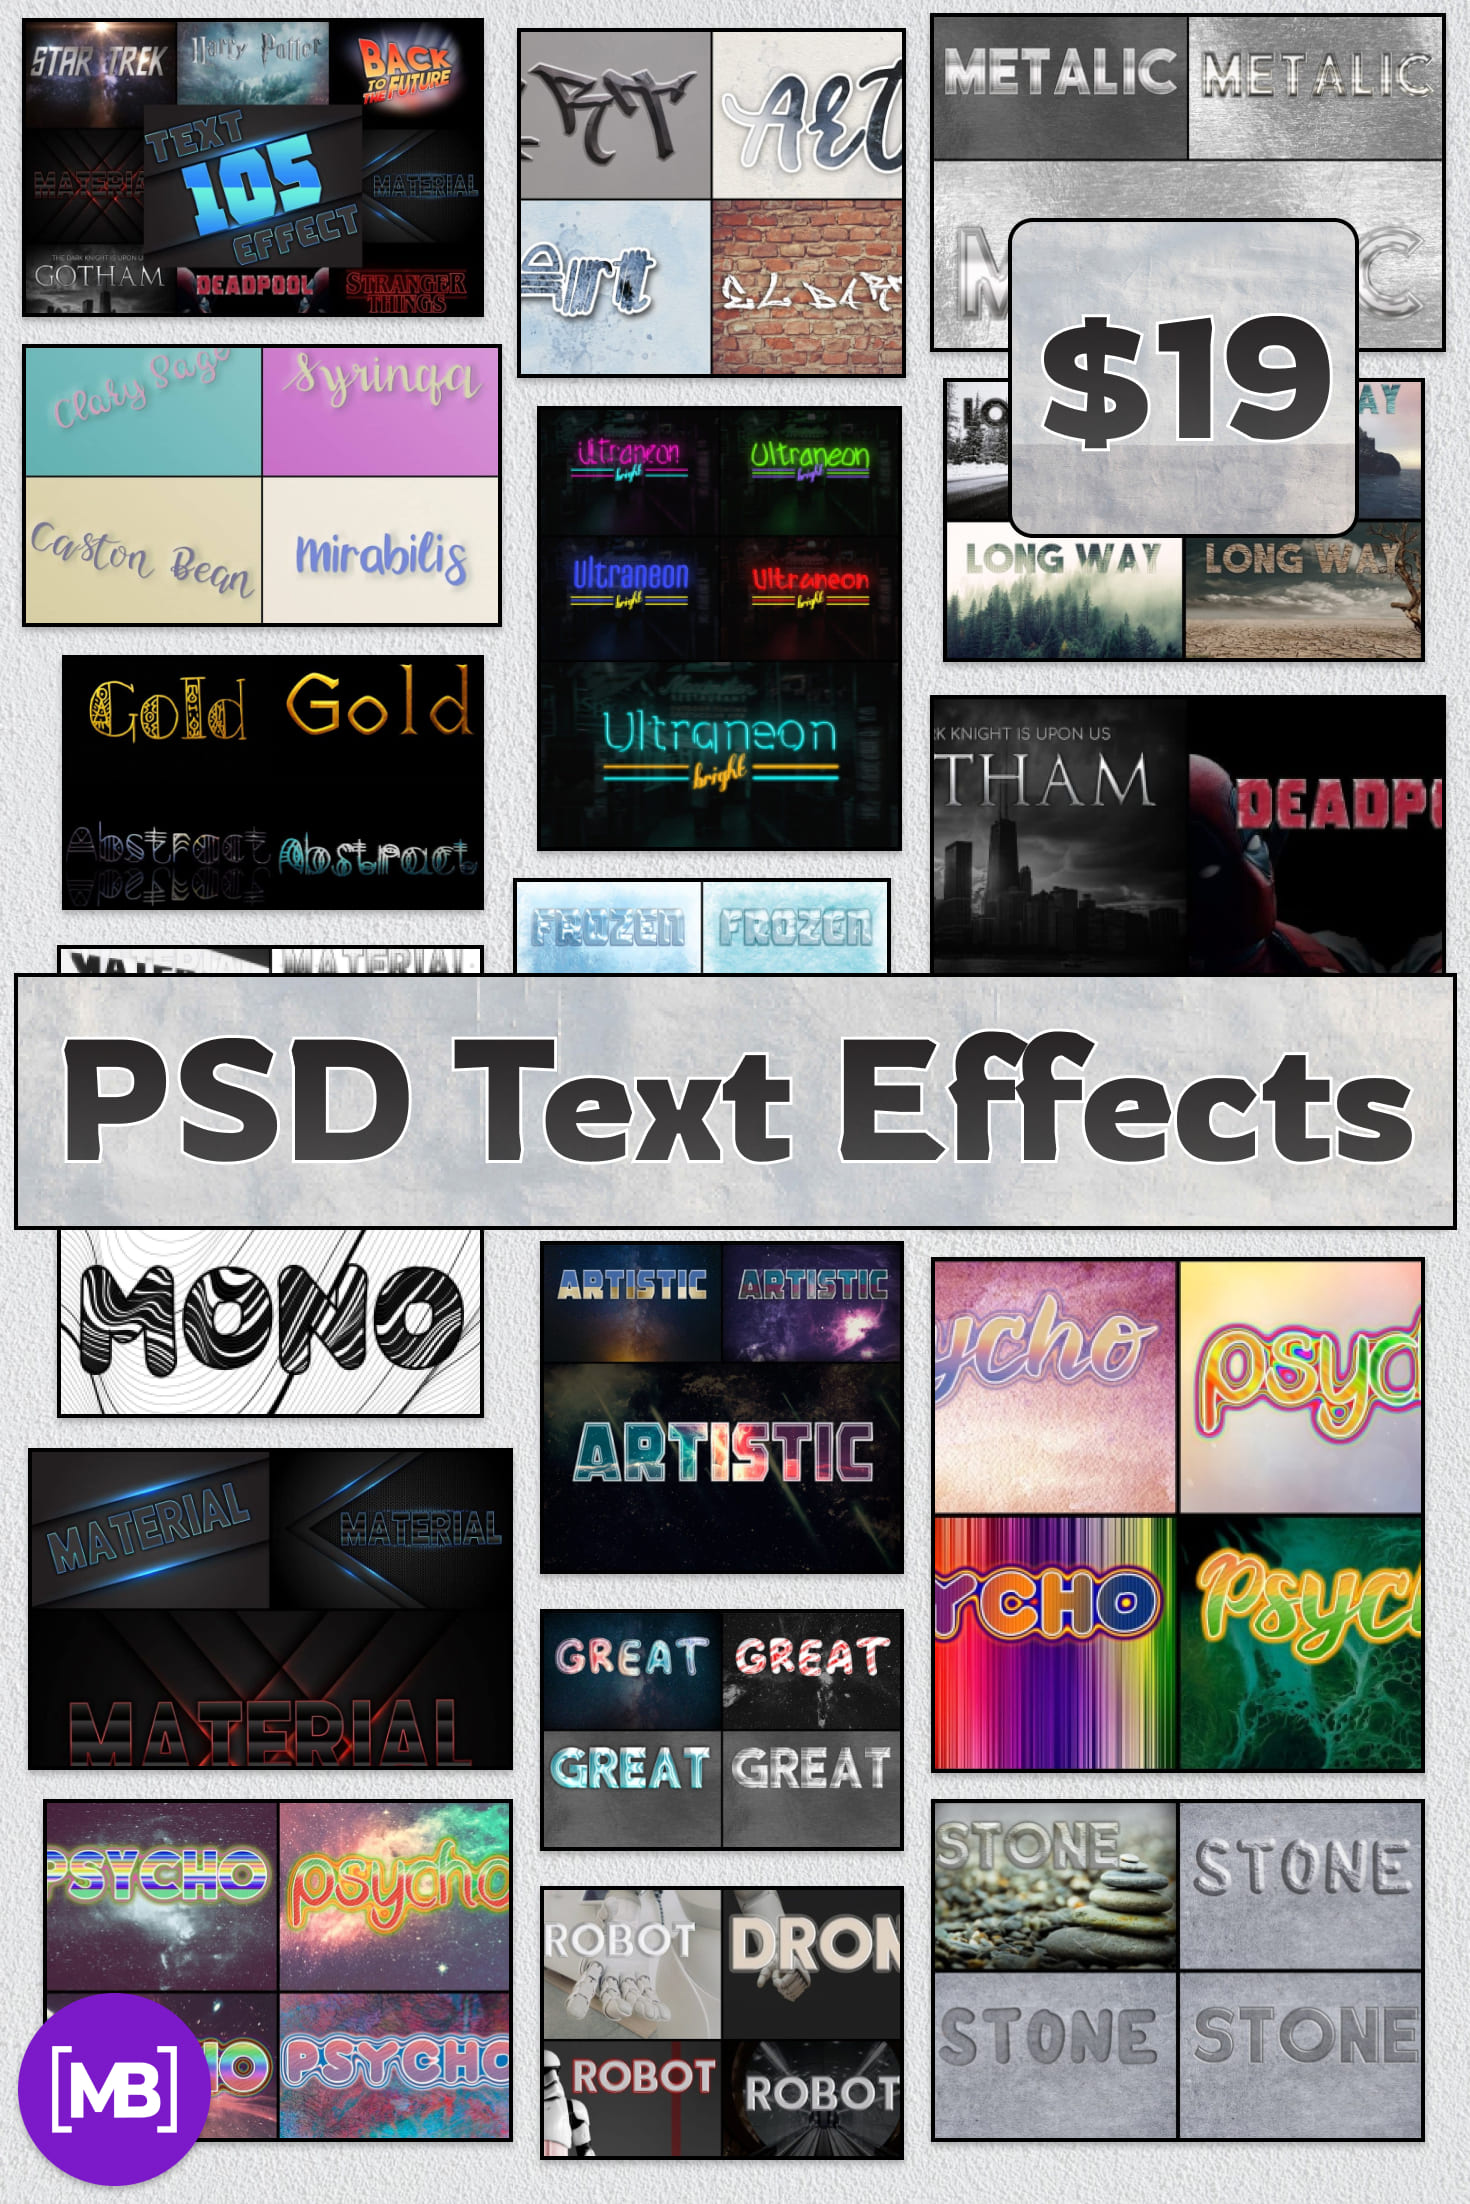 Pinterest Image: PSD Text Effects - 105 Pro Phtoshop Effects for Texts.